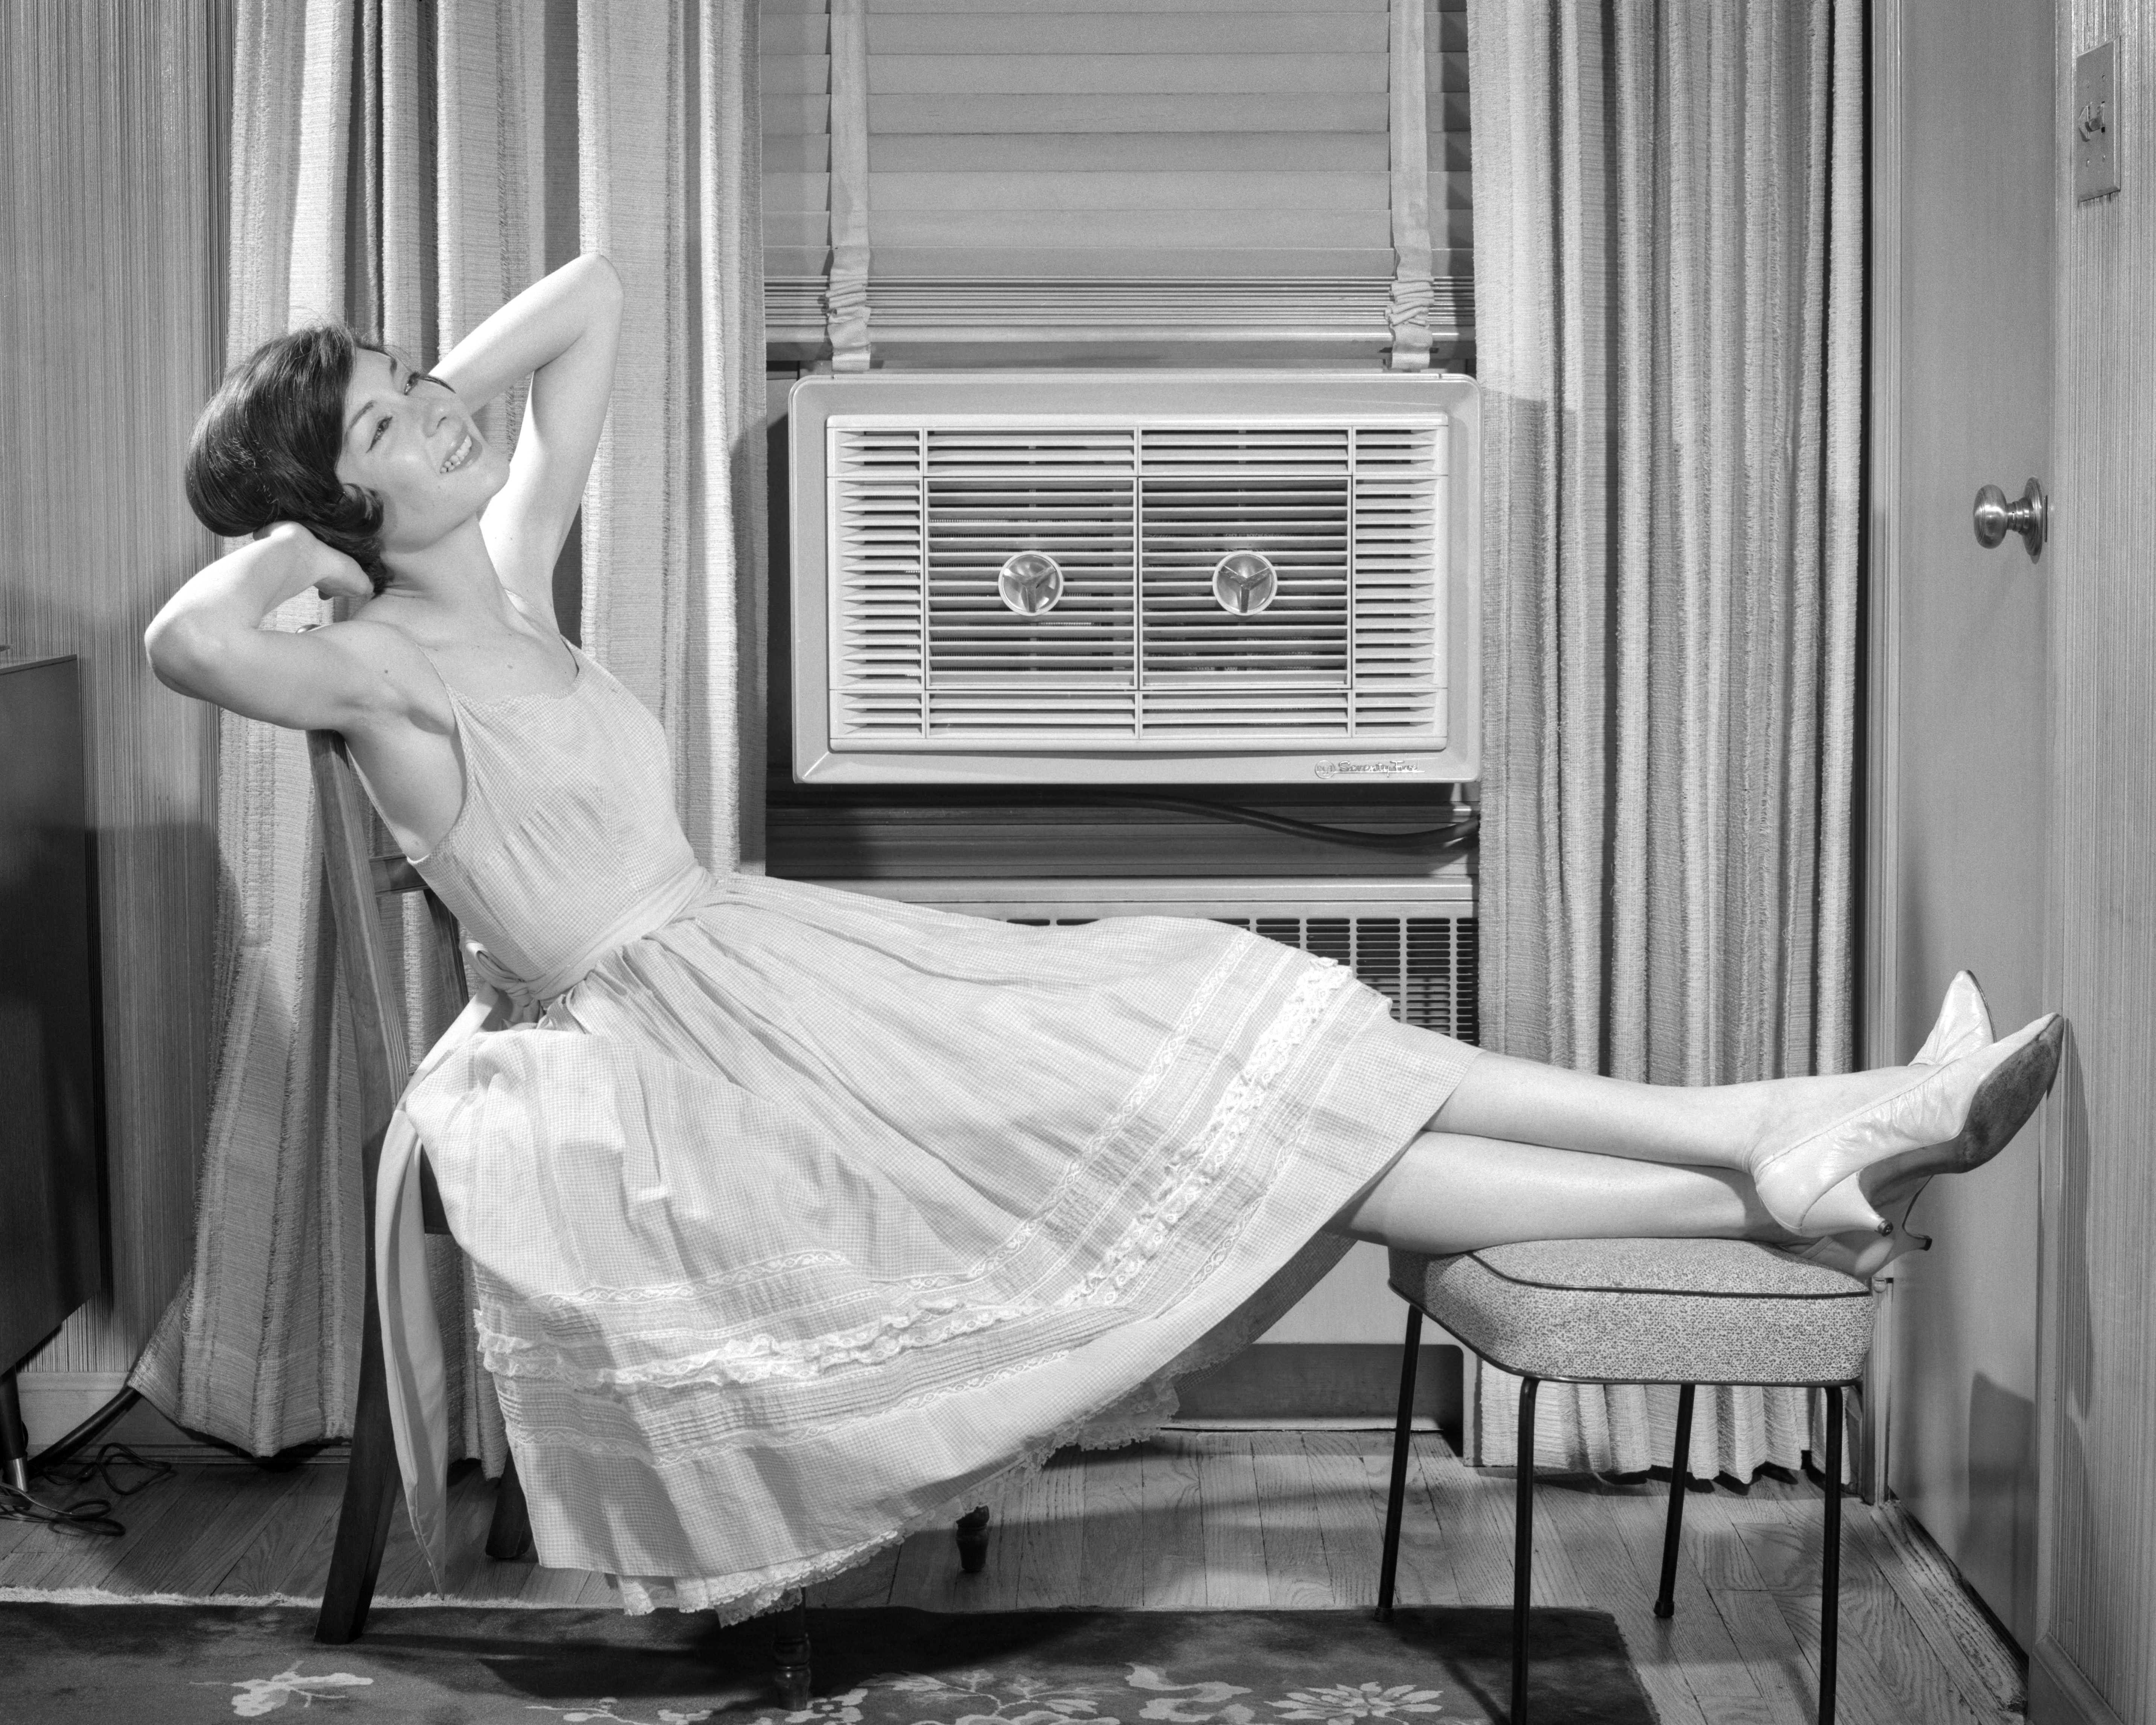 A vintage photo of a woman relaxing in front of a window-mounted air conditioner in her home.